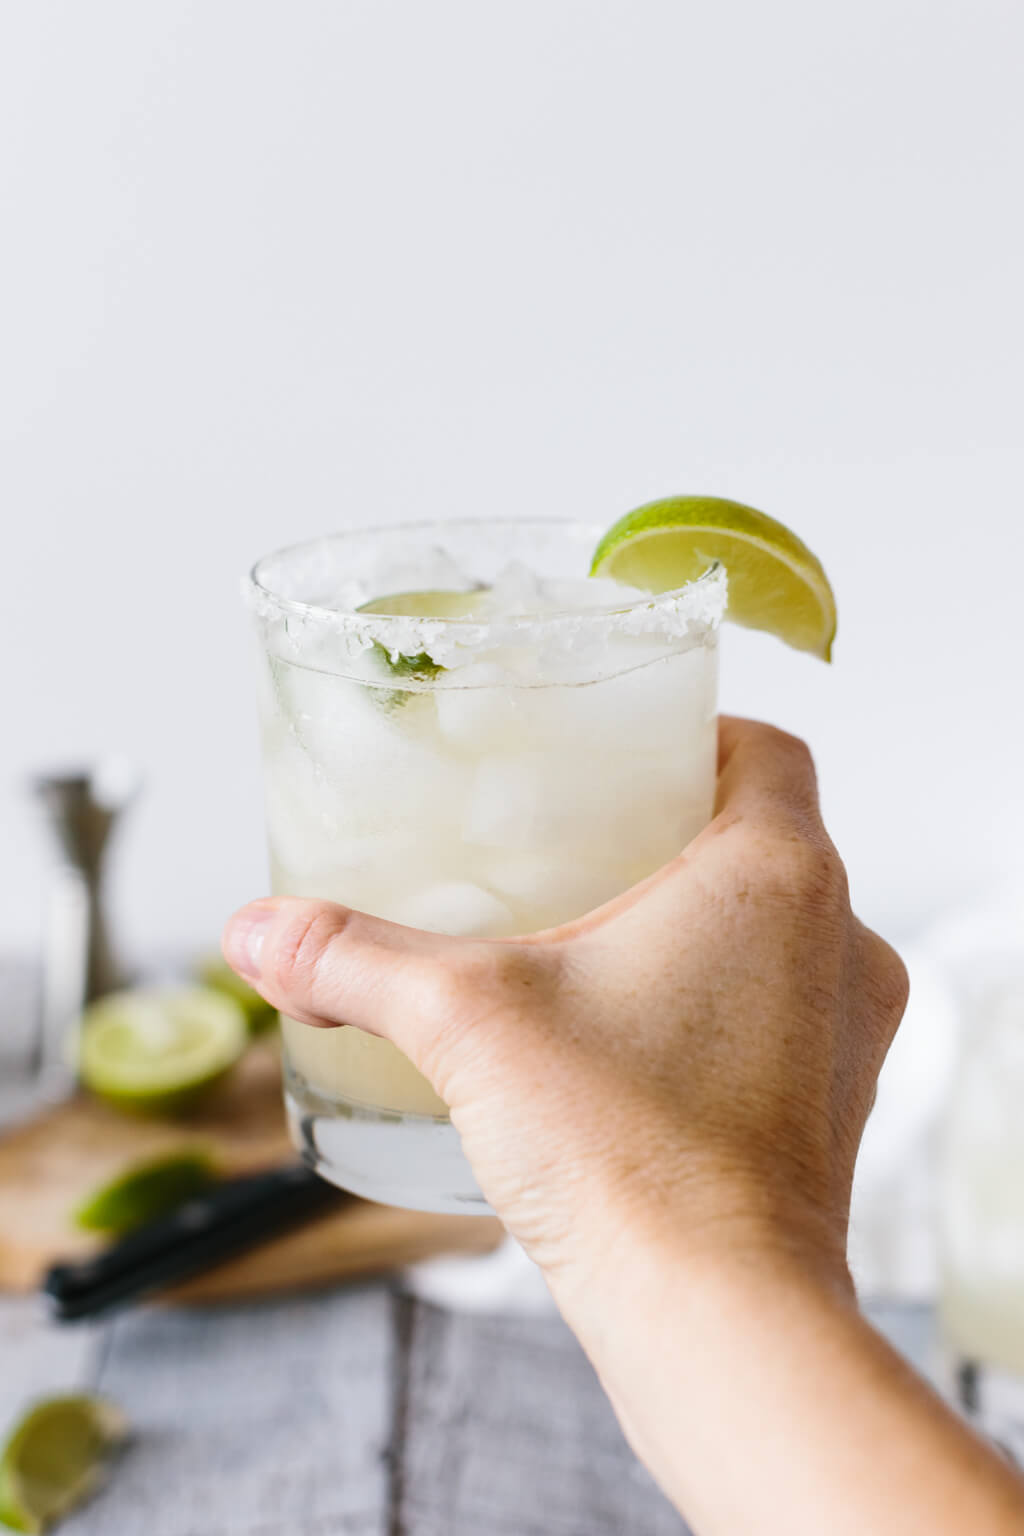 Holding a margarita in a glass with a lime wedge.